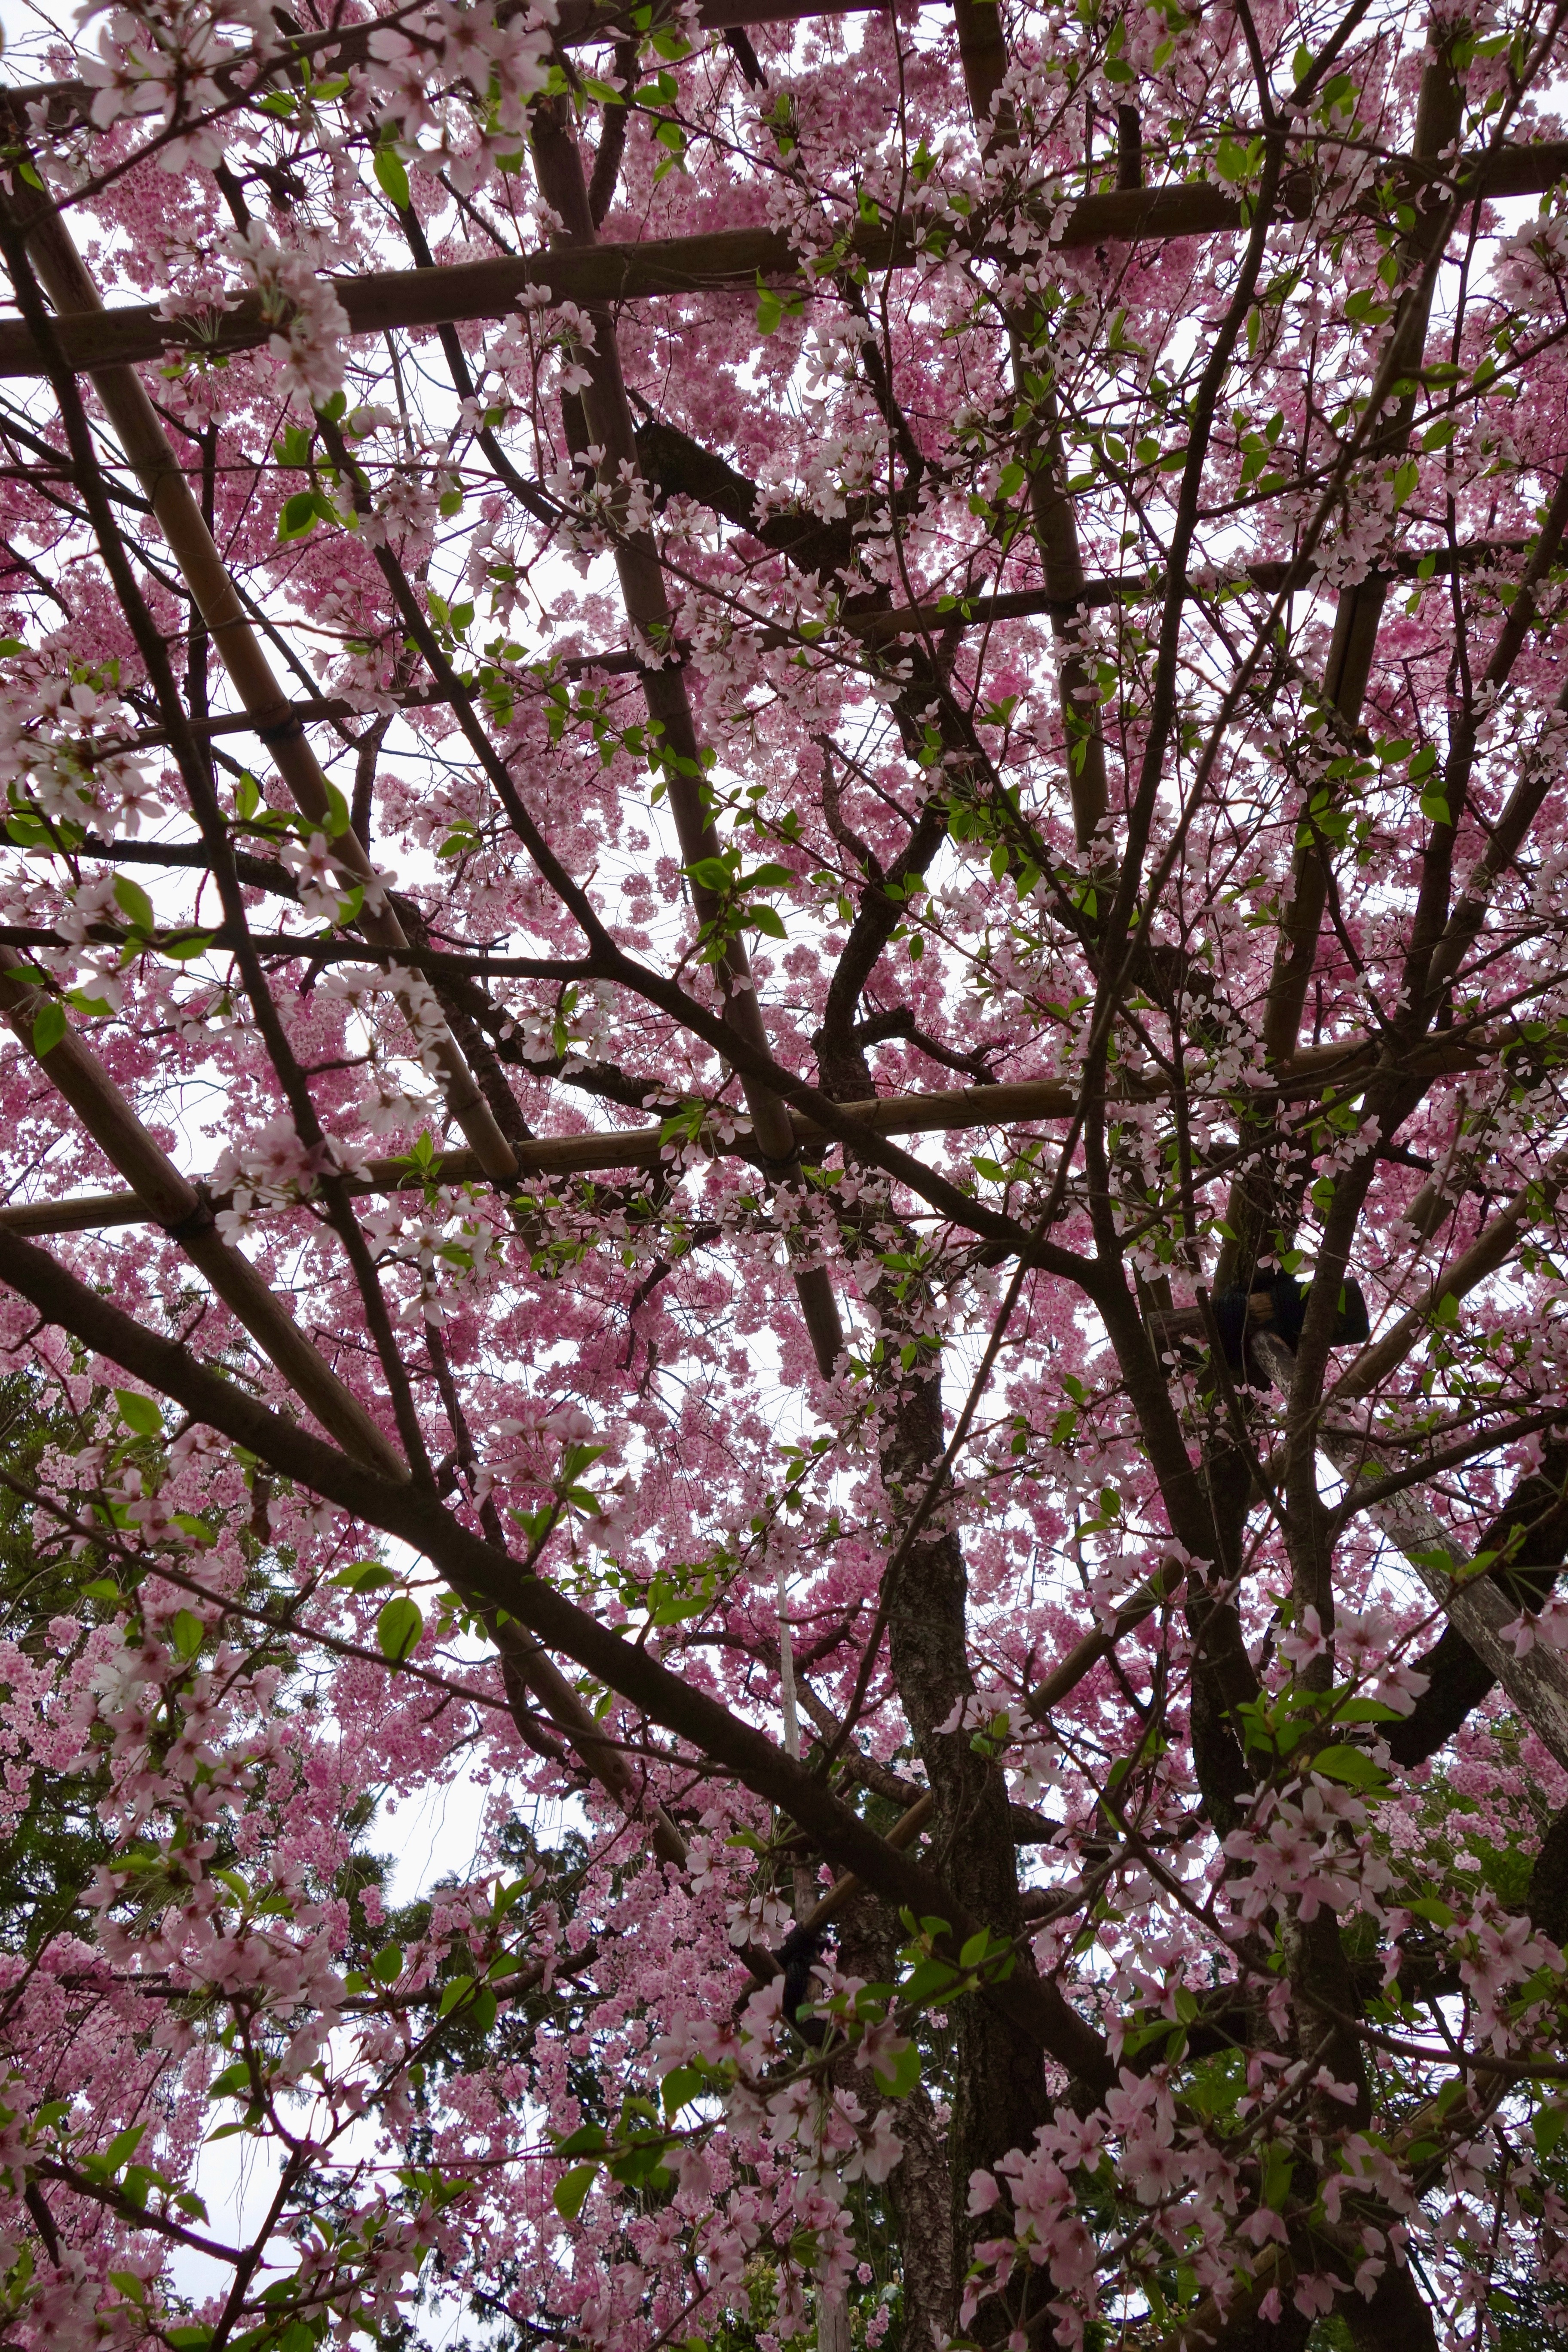 canopy for support of cherry blossoms